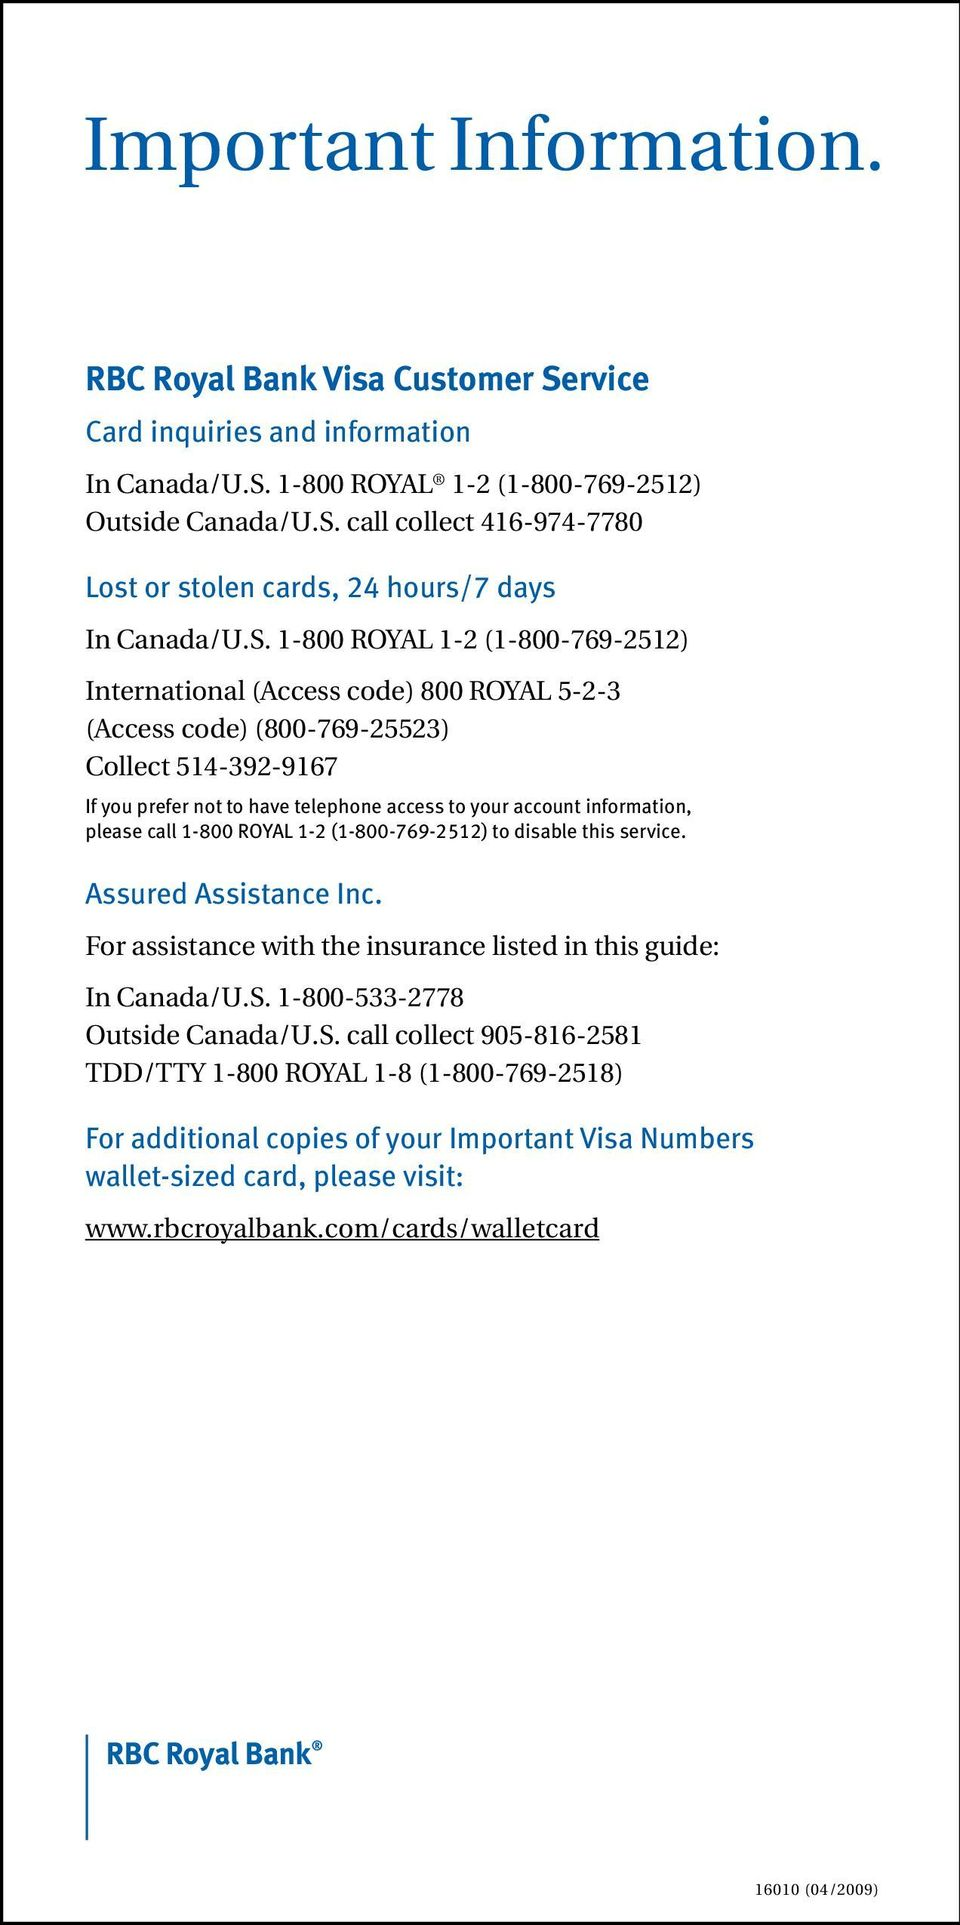 information, please call 1-800 ROYAL 1-2 (1-800-769-2512) to disable this service. Assured Assistance Inc. For assistance with the insurance listed in this guide: In Canada/U.S.